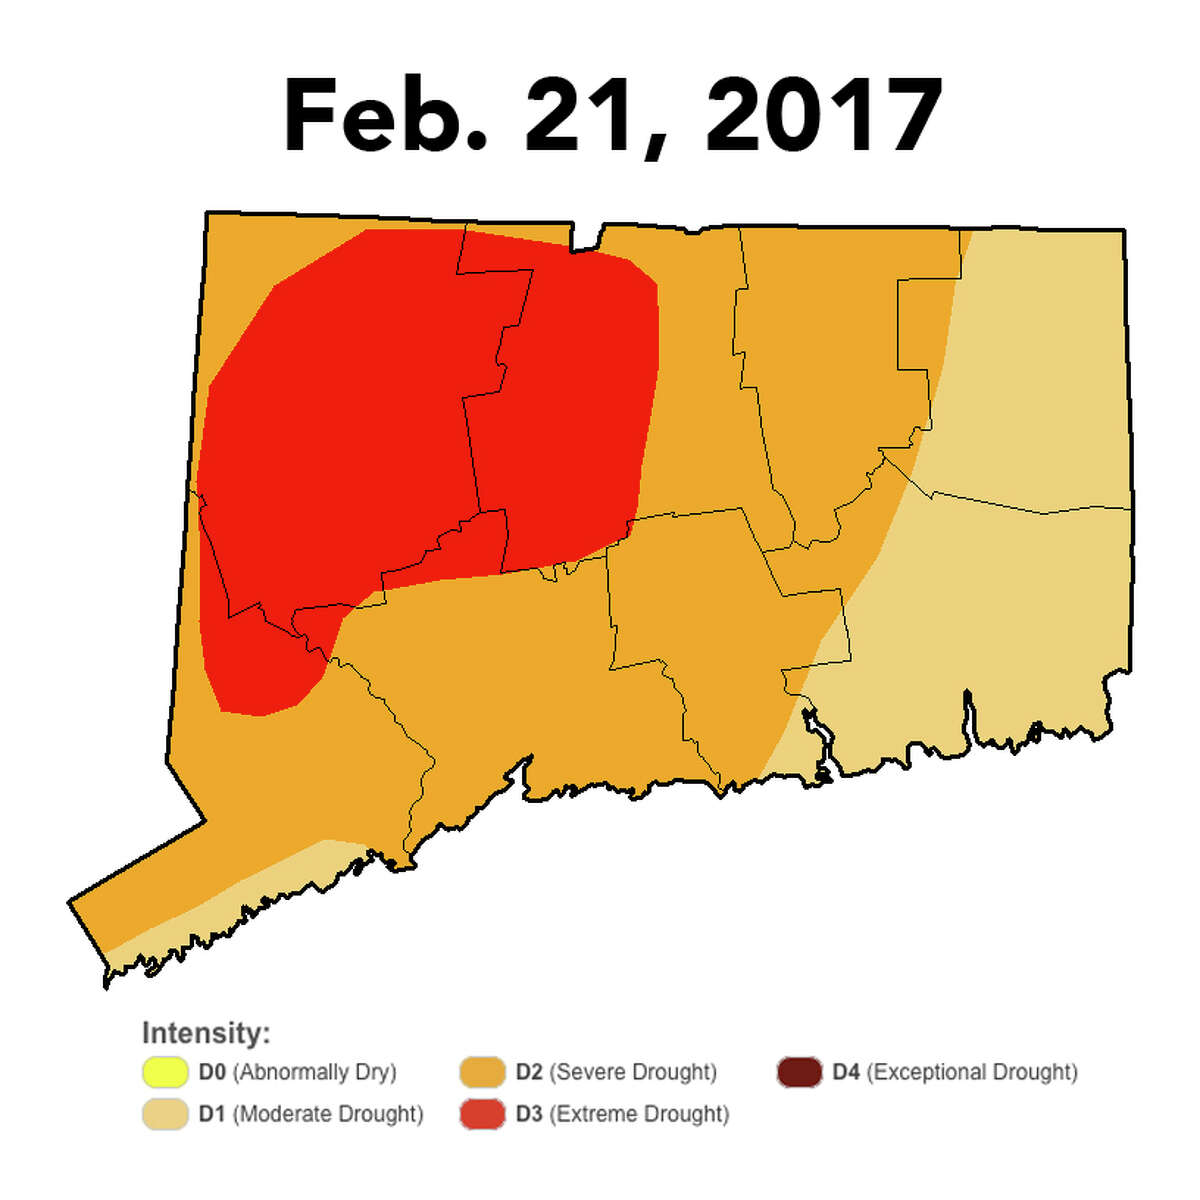 Monthly drought intenstiy in Connecticut